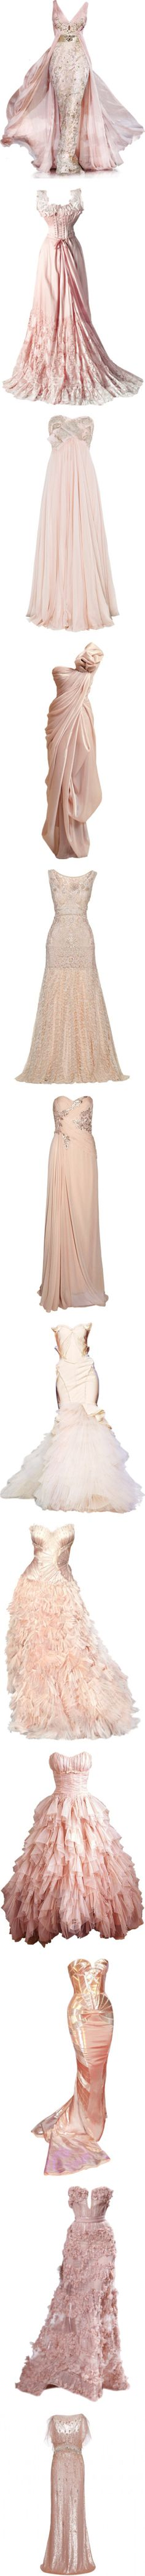 """Gowns Pink/Peach"" by altagal ❤ liked on Polyvore"